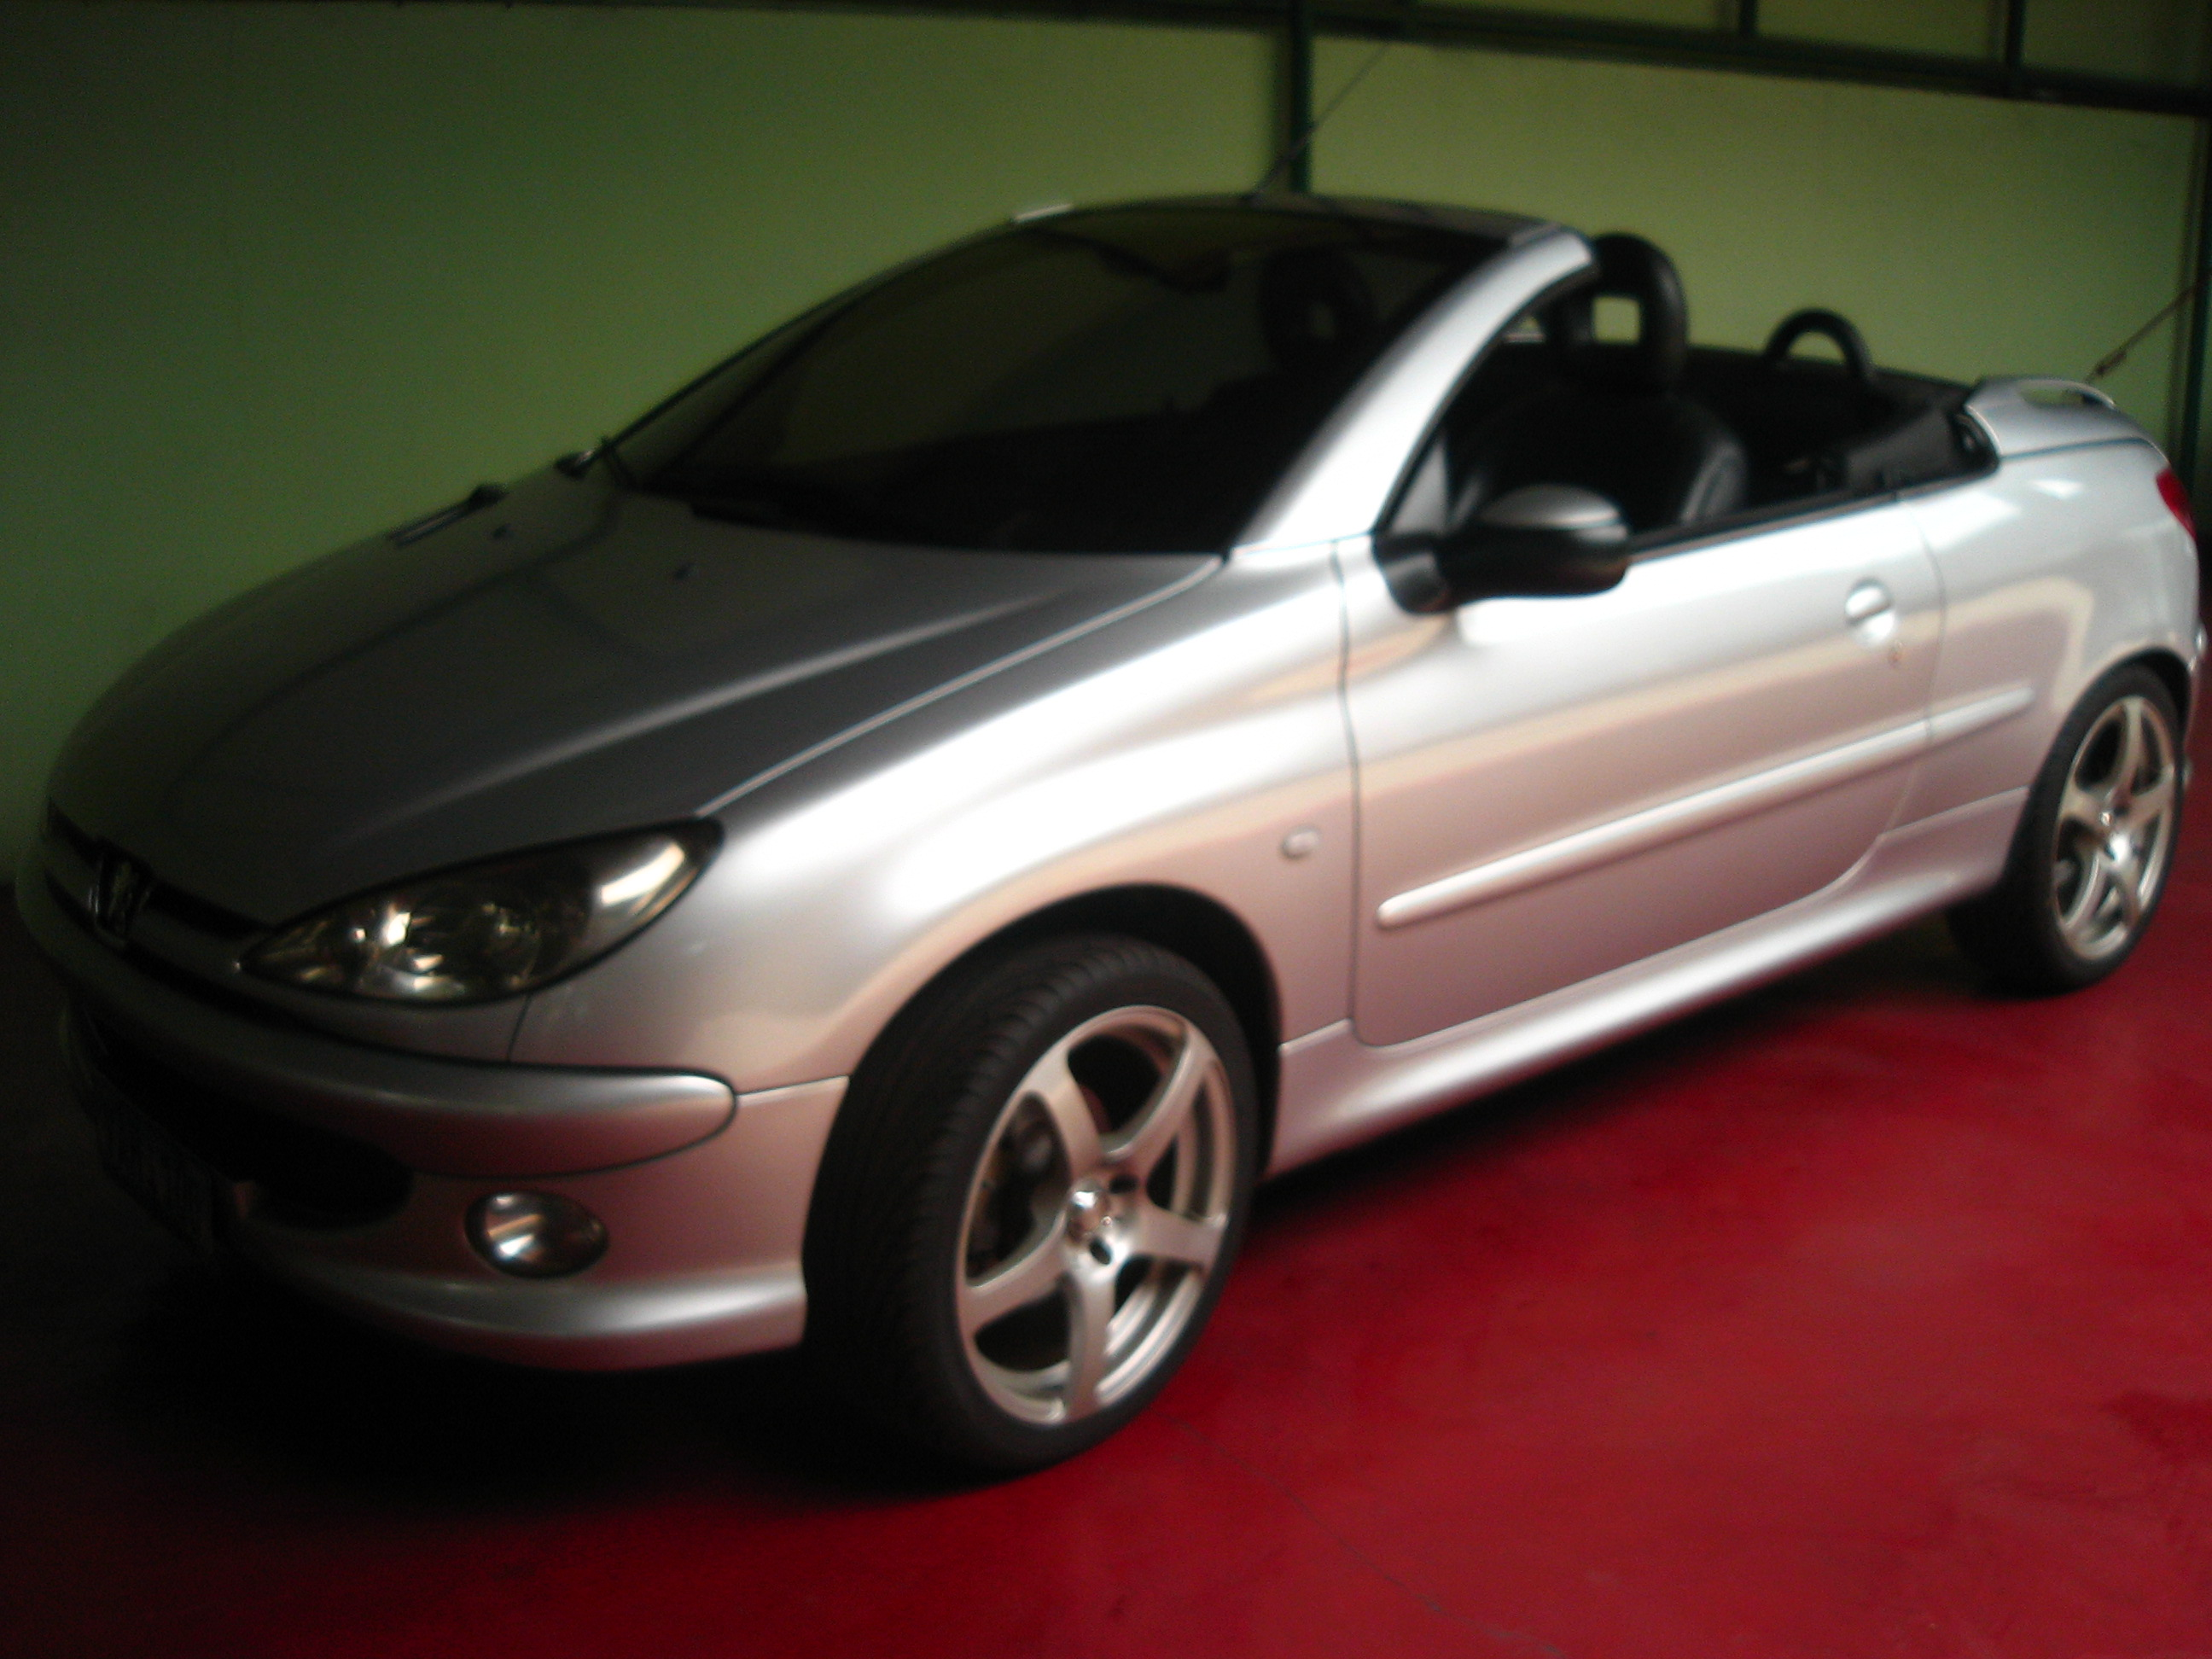 2005 Peugot 2-door convertible – Greenhills Autohaus Inc